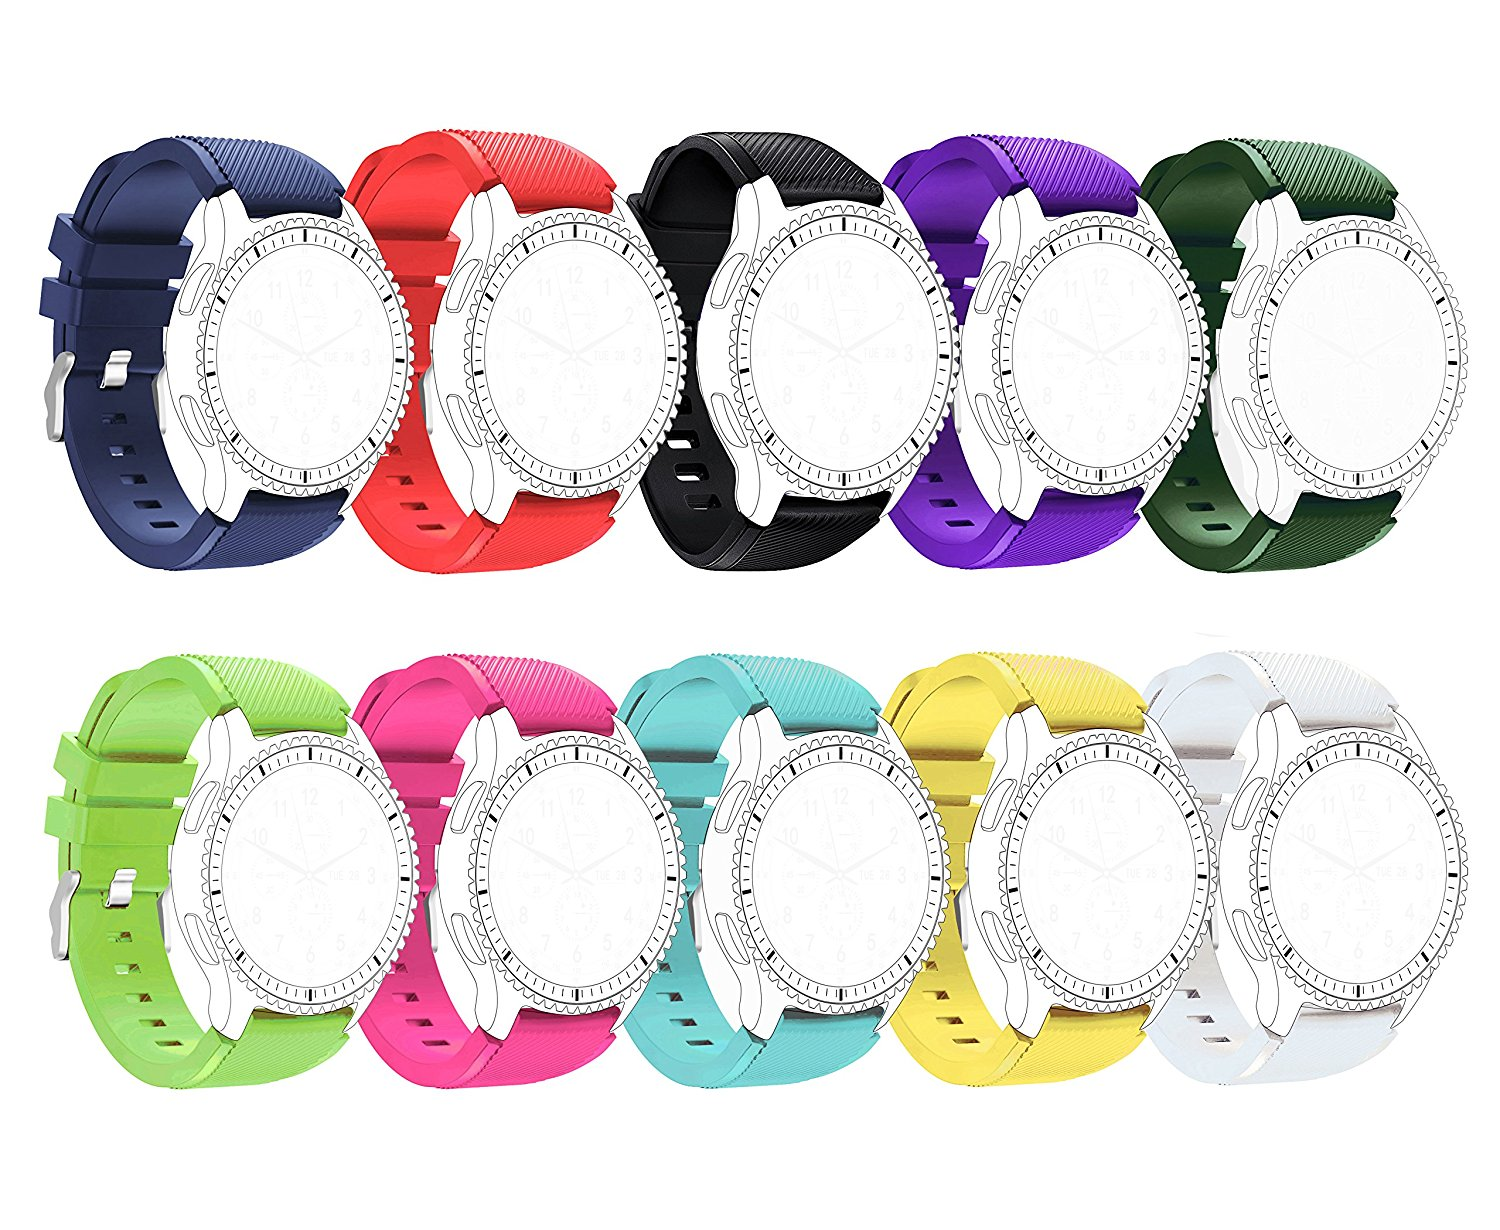 10 Colors Samsung Gear S3 Band, BeneStellar 46mm Smartwatch Replacement Band for Samsung Gear S3 Frontier / S3 Classic / Moto 360 2nd Gen